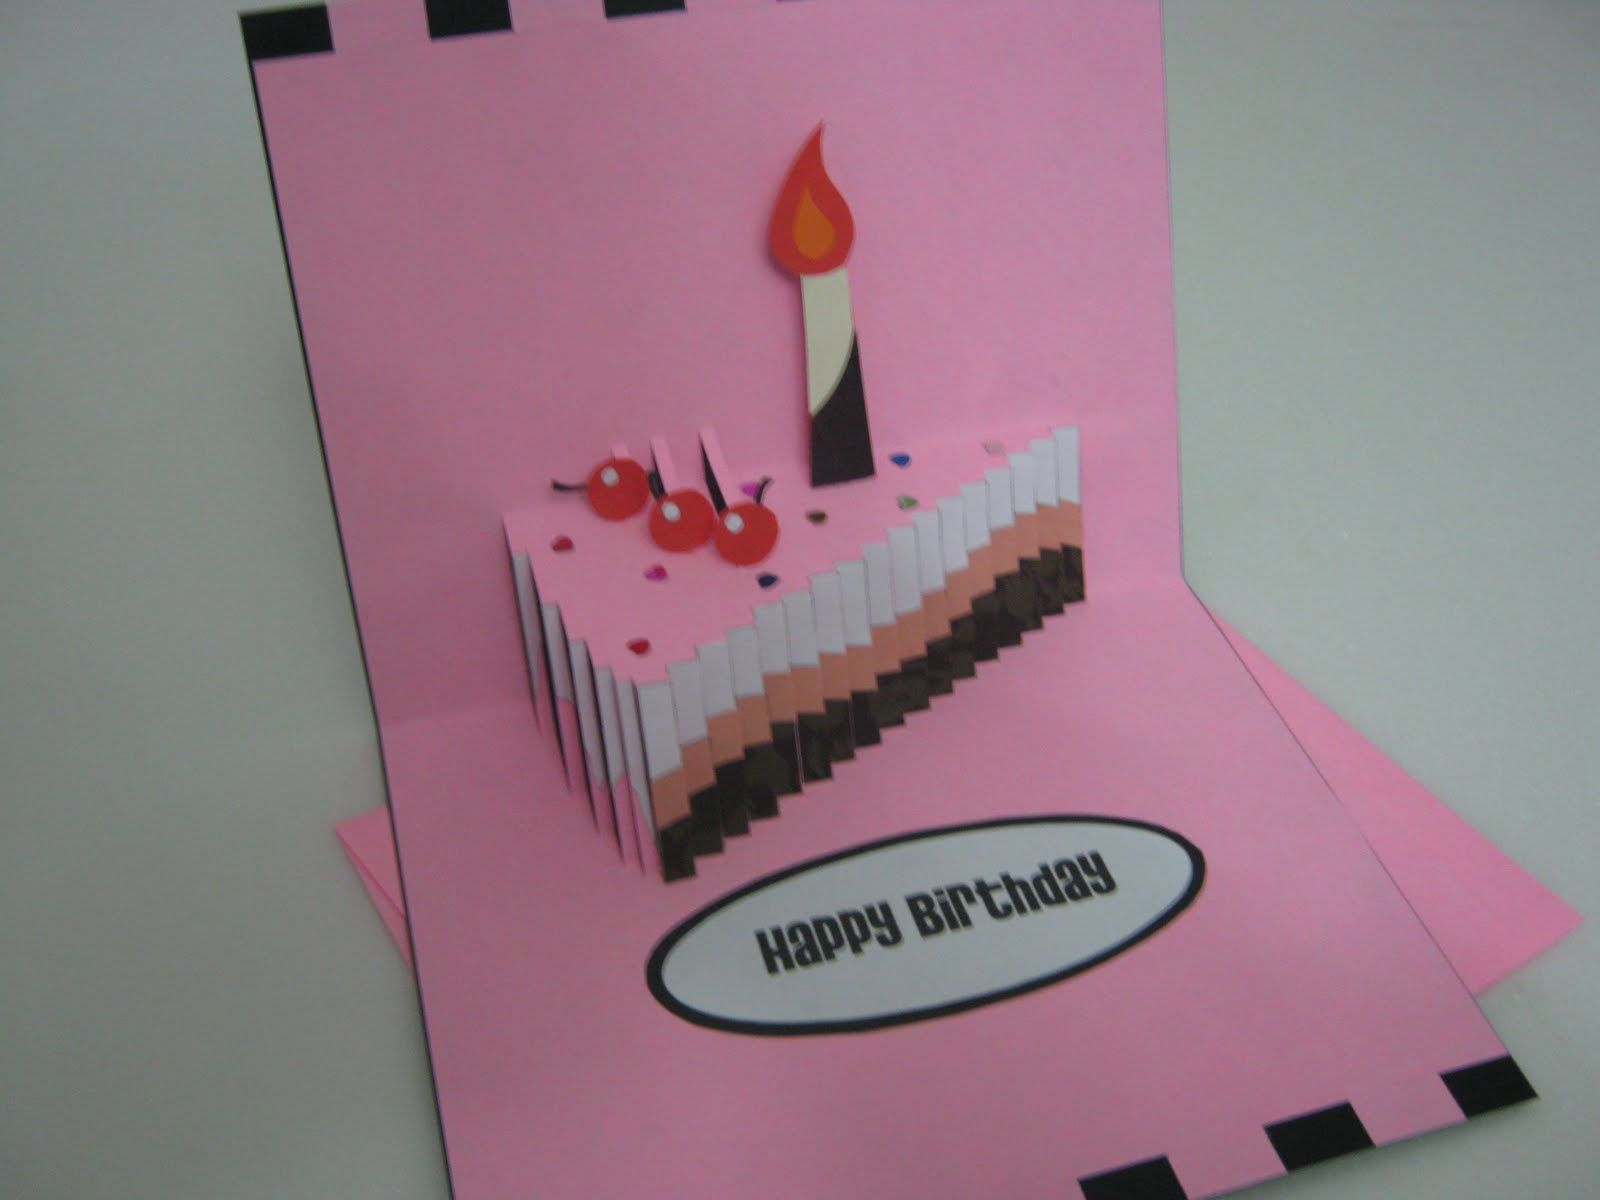 Pop Up Birthday Card Birthday Card Template Birthday Card Design Handmade Birthday Cards